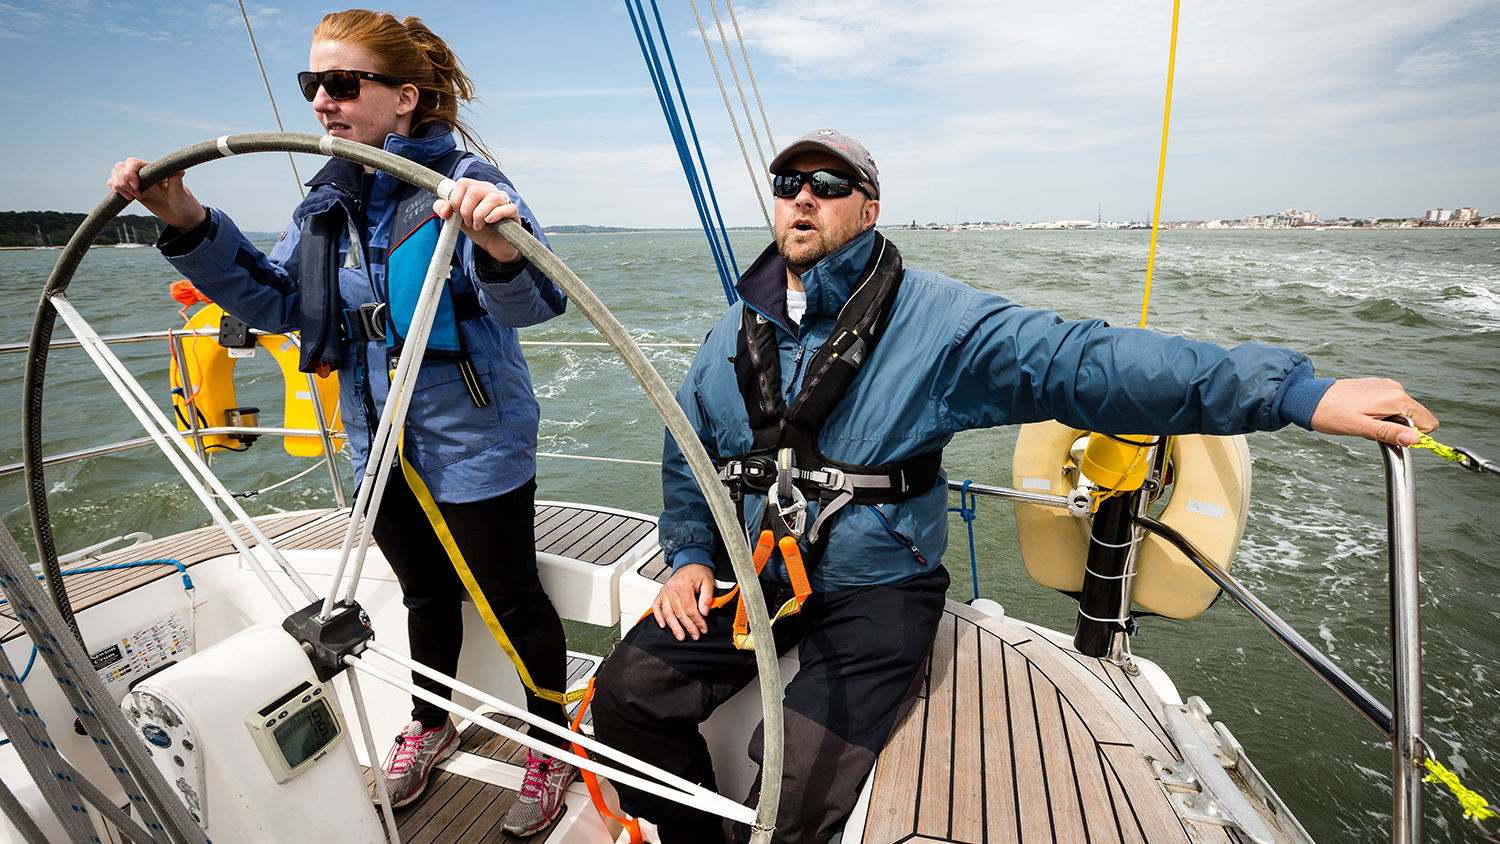 Yacht sailing: Crew at the helm